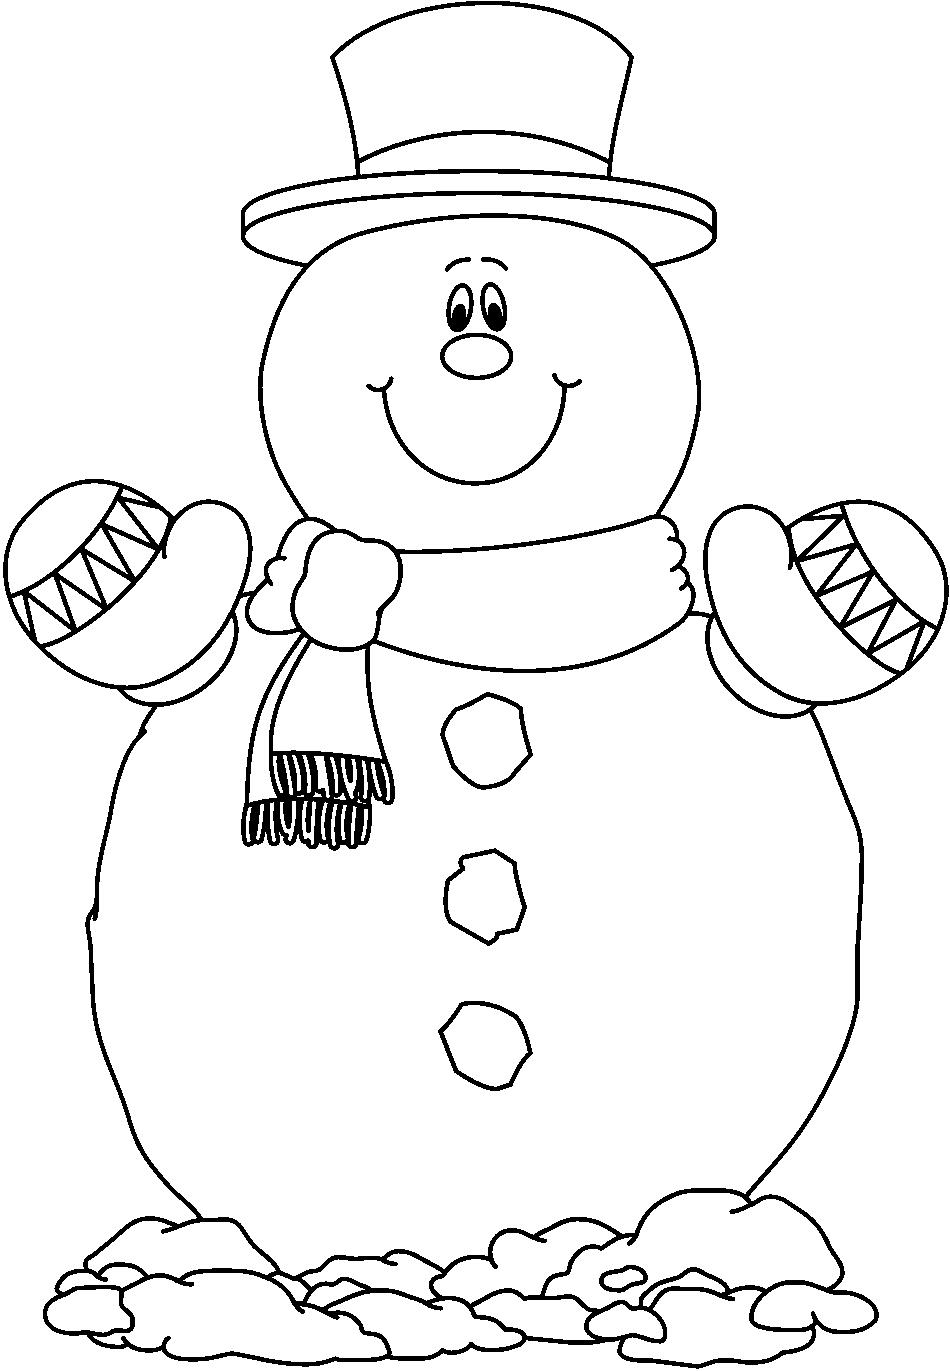 233 Snowman Black And White free clipart.